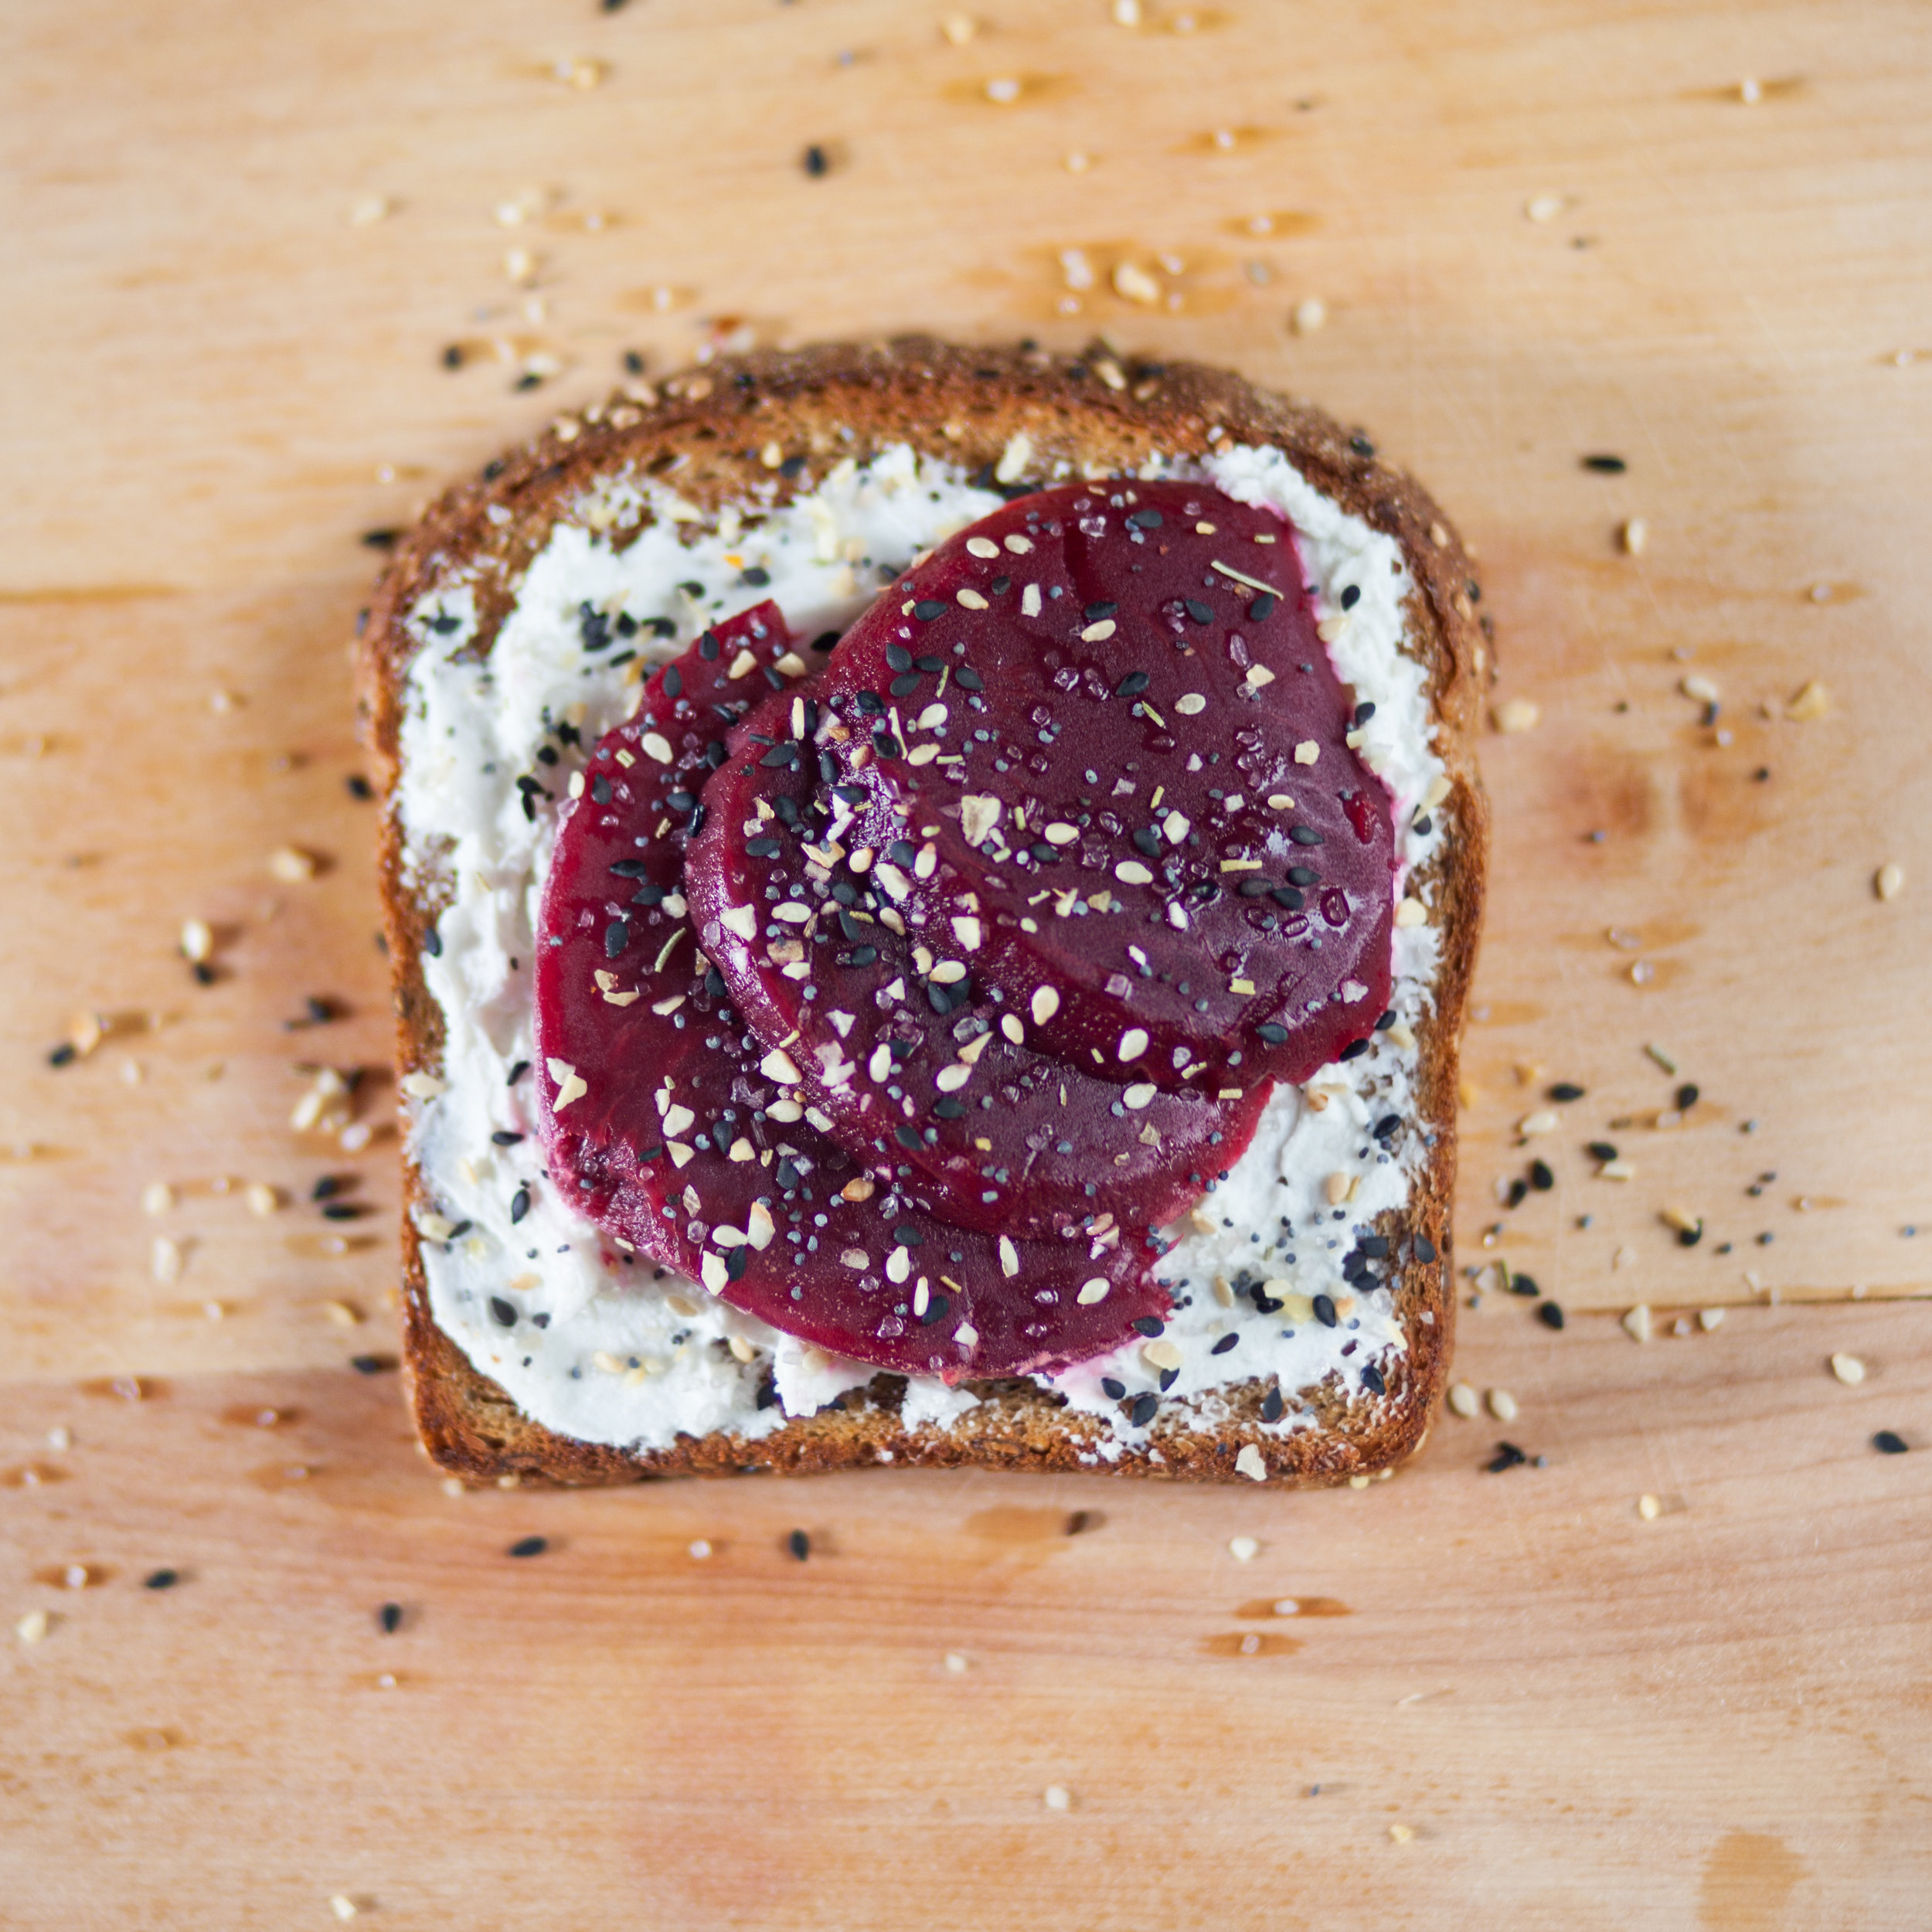 Toast with goat cheese and jellied cranberry sauce